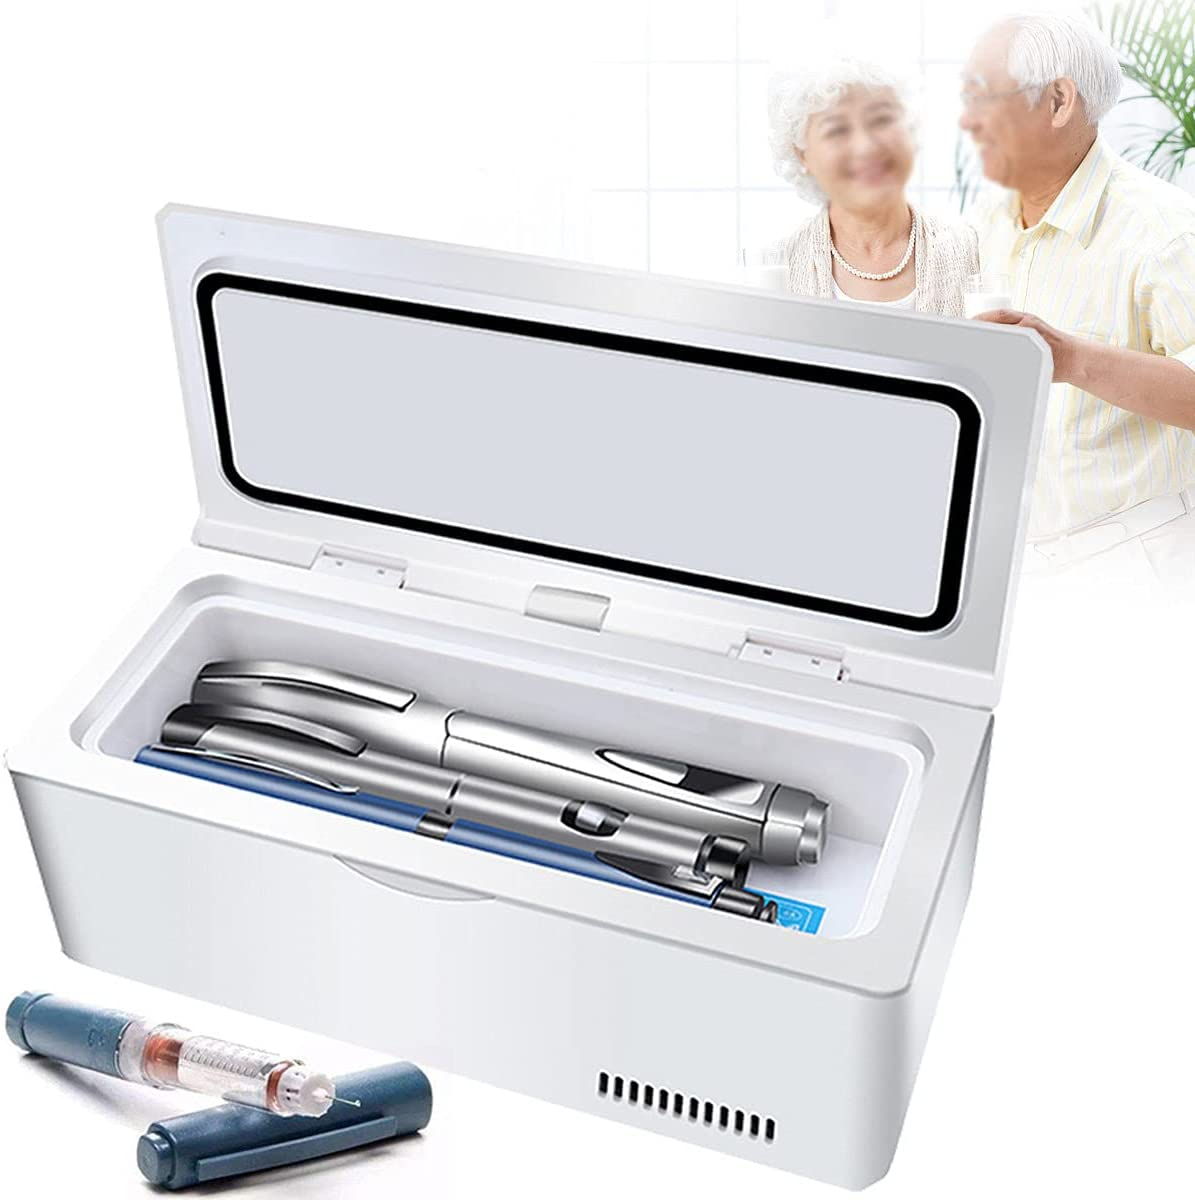 ZXLZM Portable Insulin Cool Box Max 53% OFF Outlet ☆ Free Shipping for x m 225 95 Medication 103